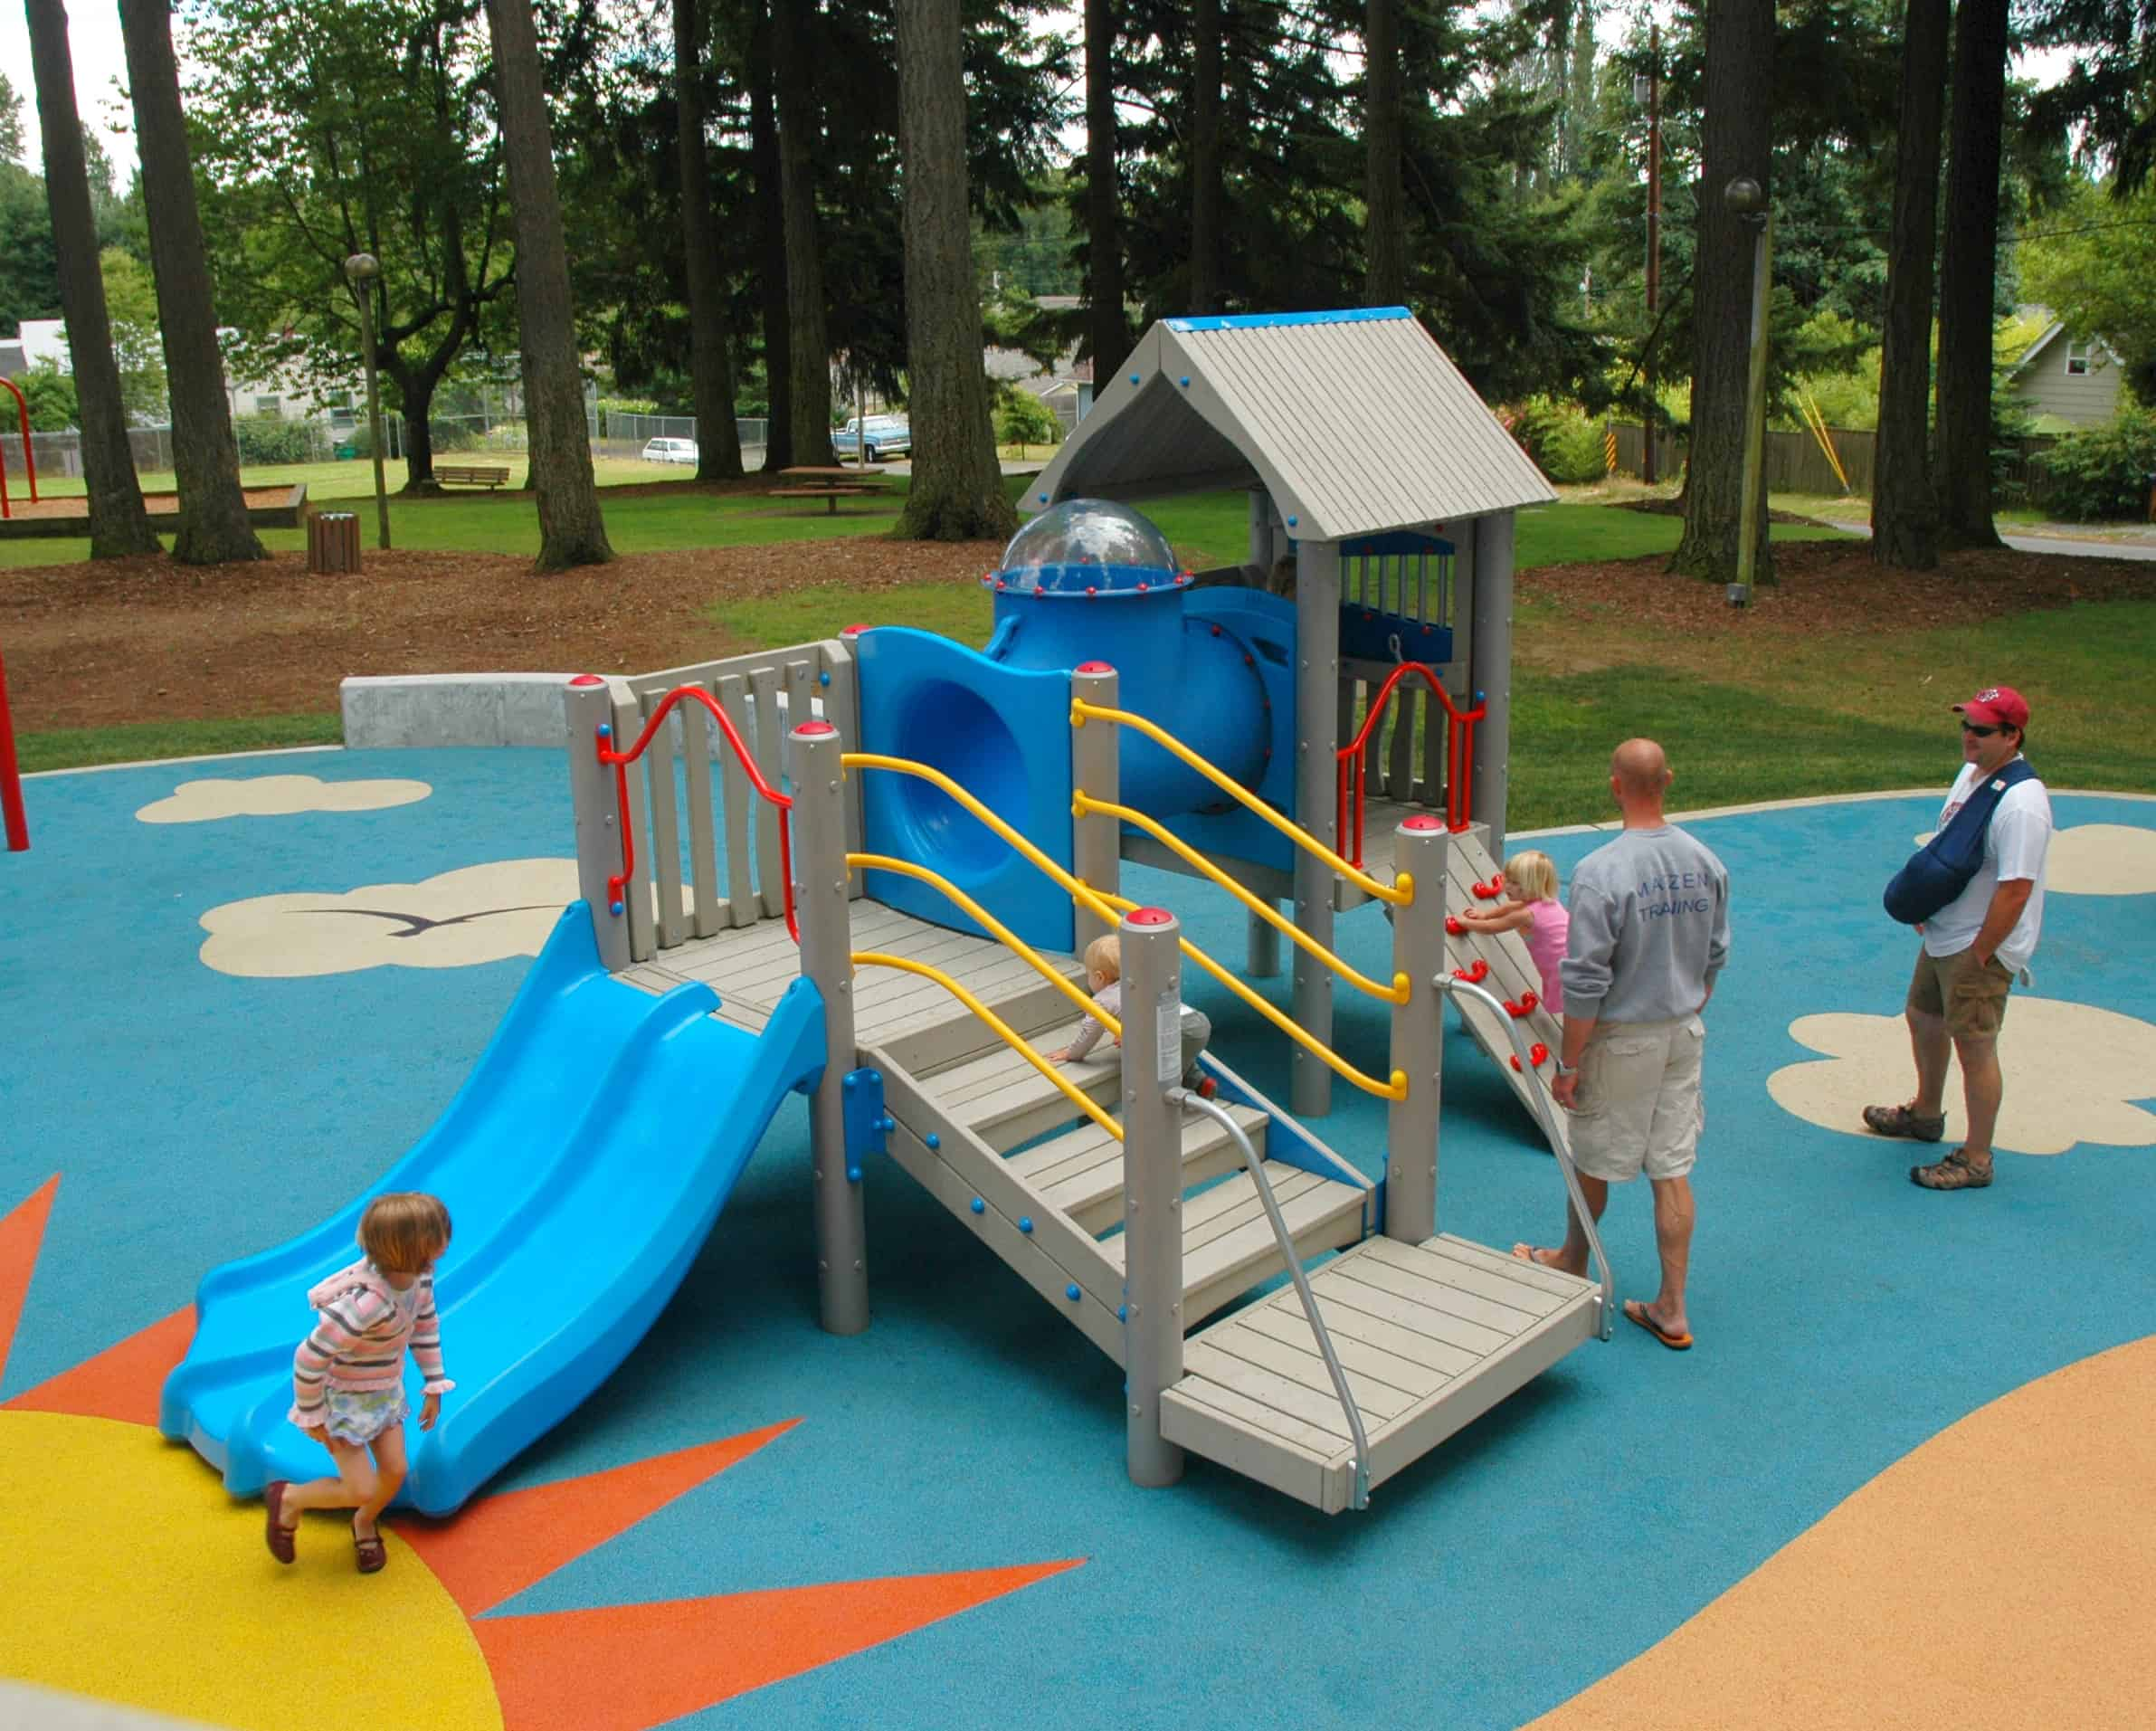 Low Maintenance Playground Equipment Is a Great Option!